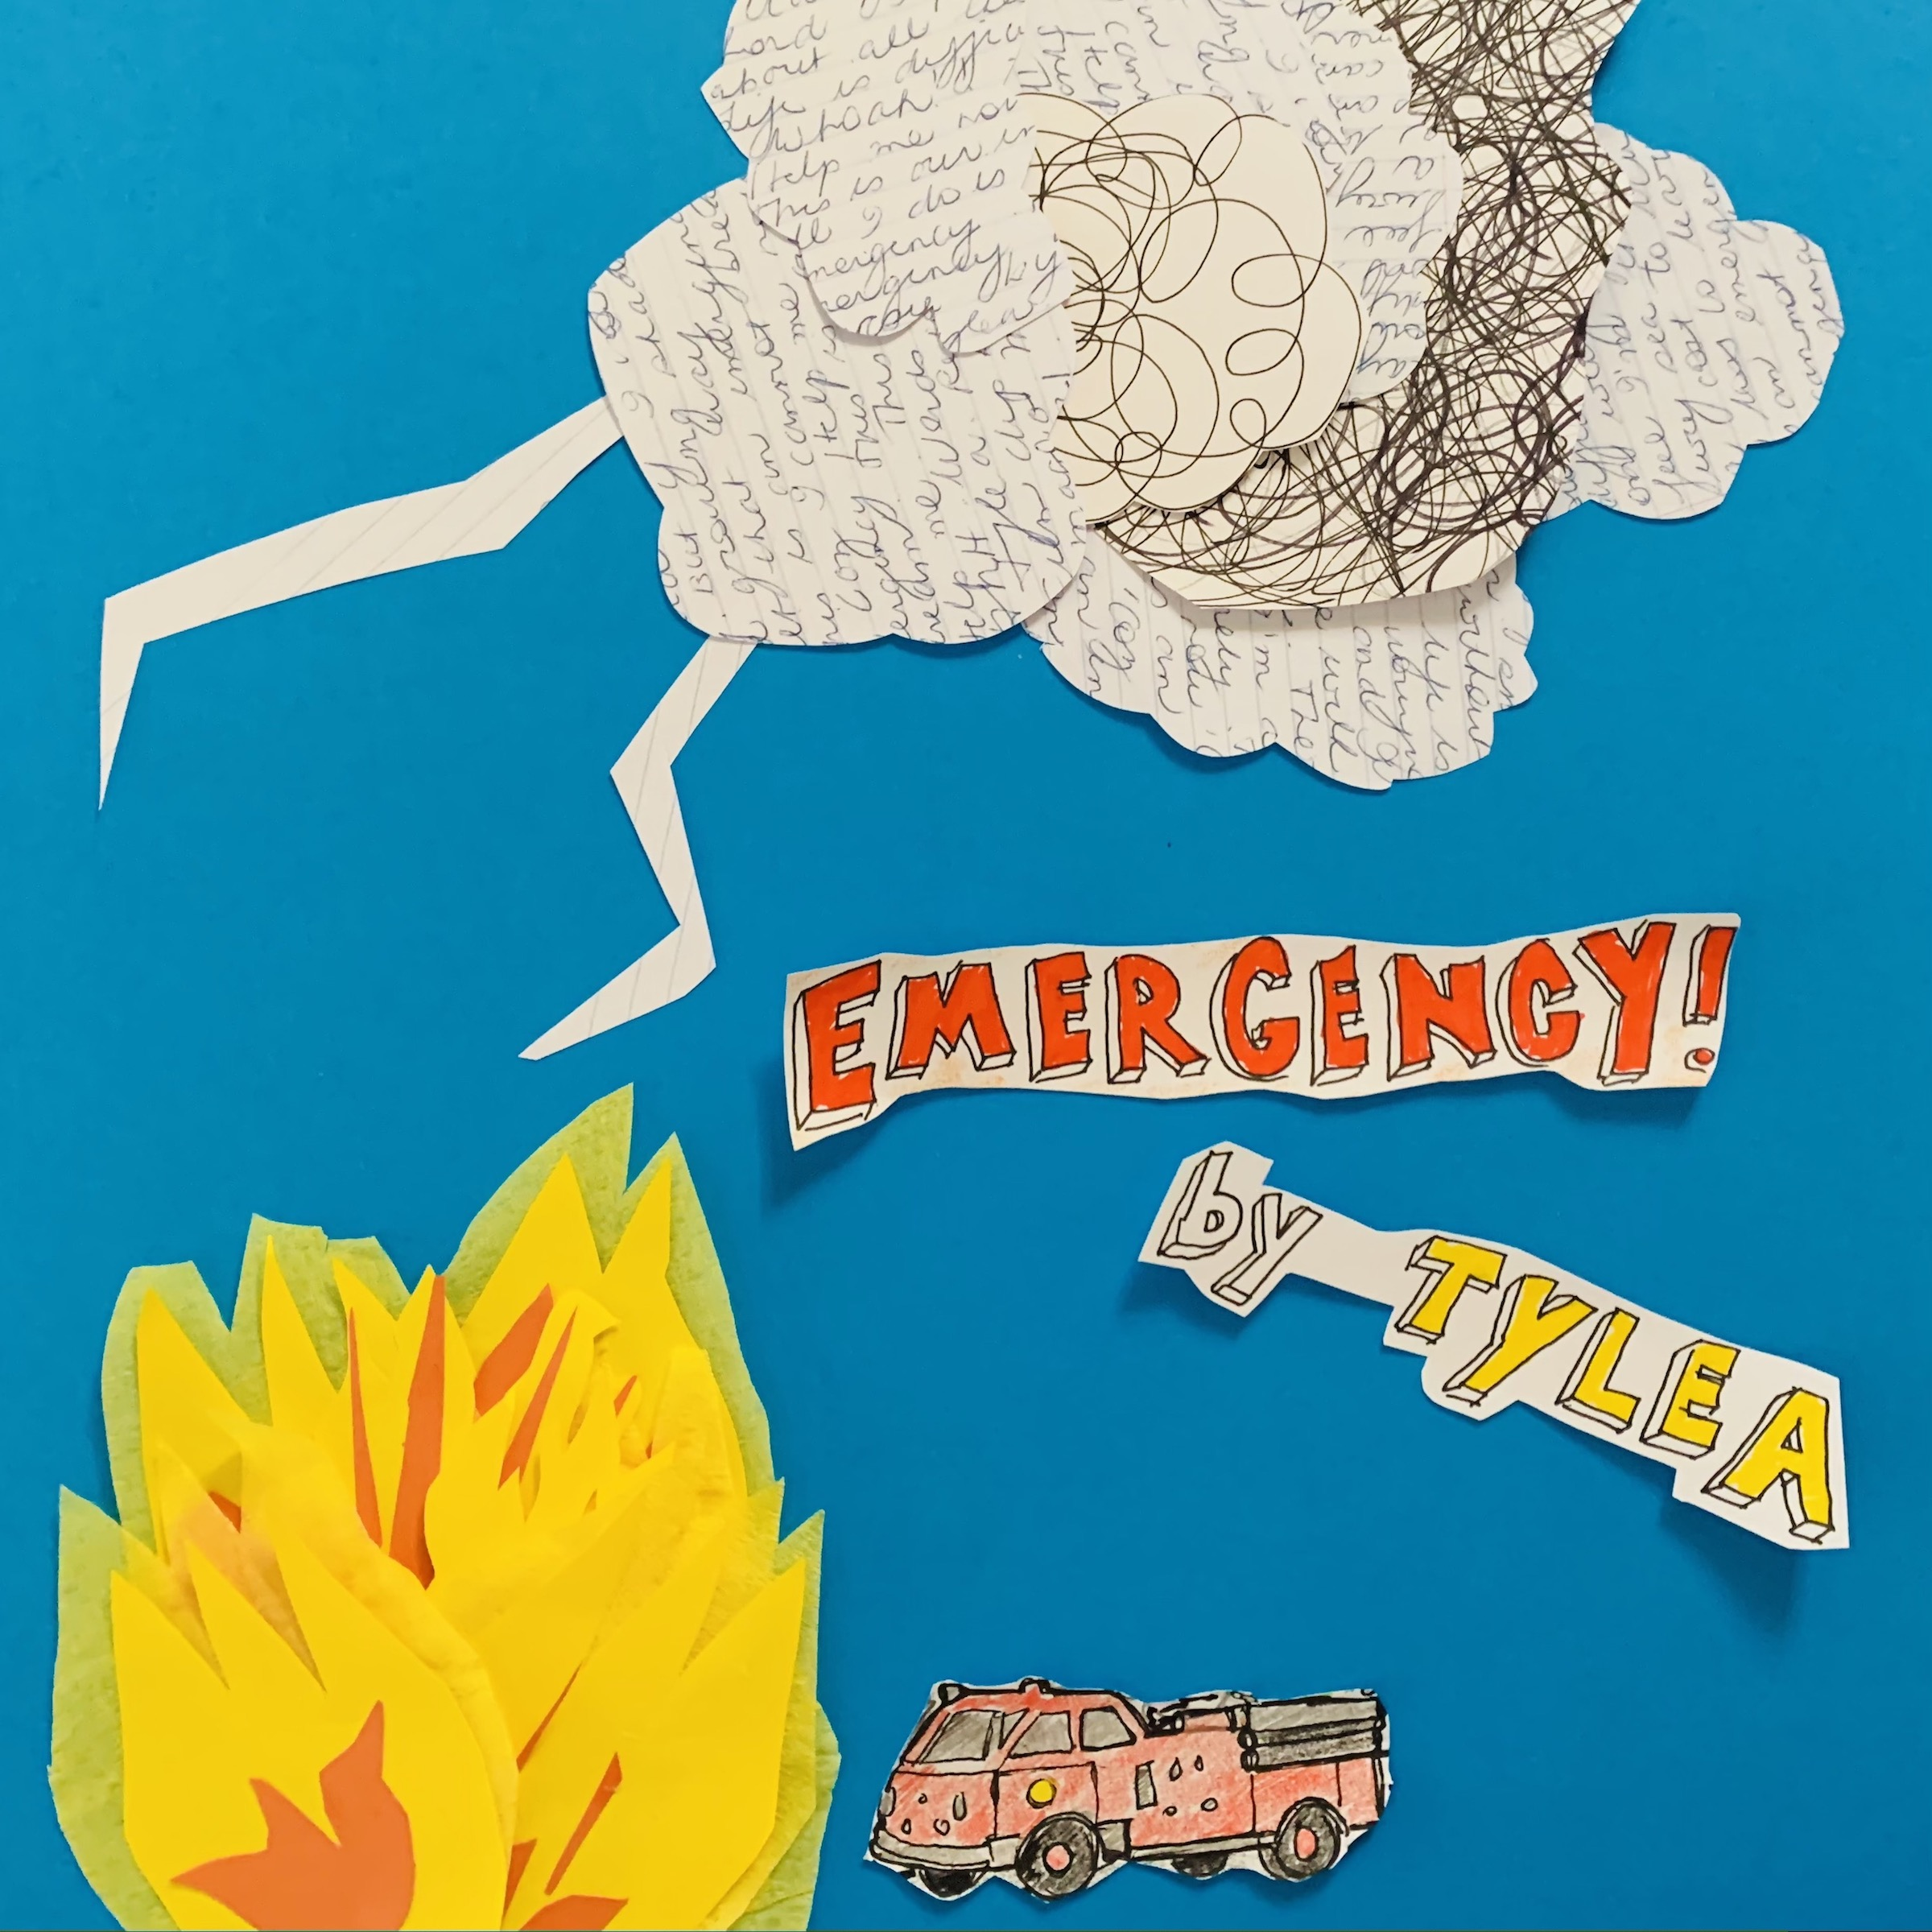 New song EMERGENCY up!!